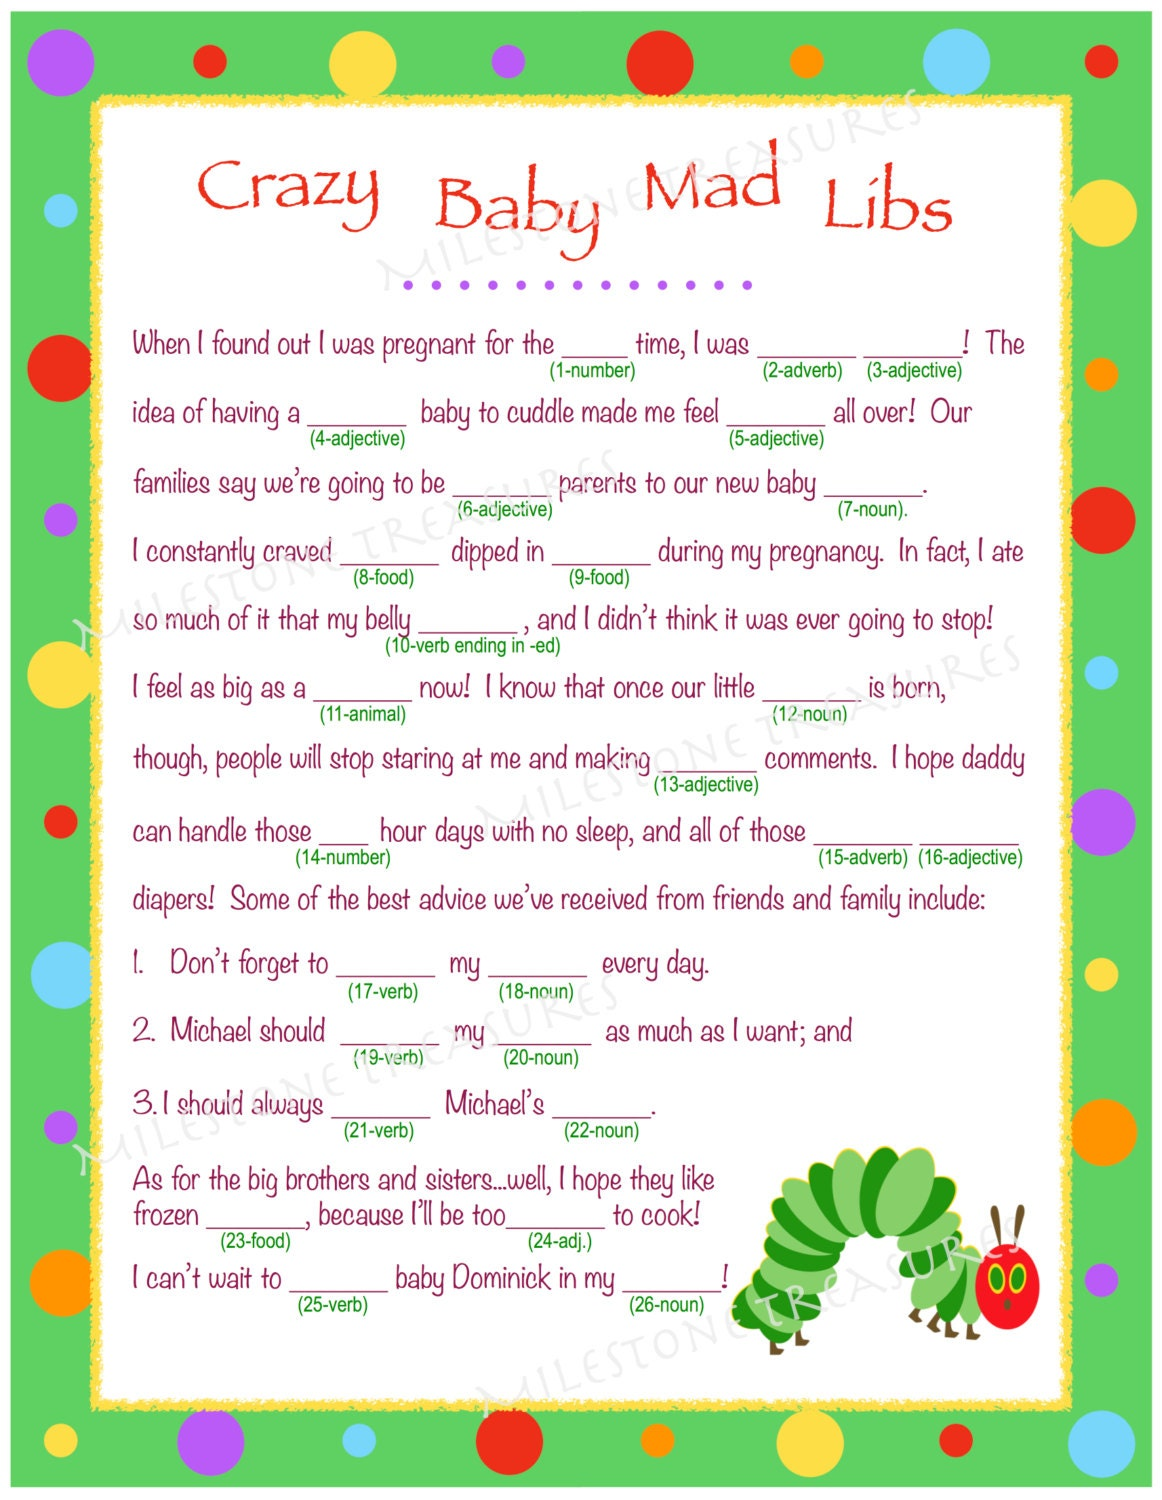 personalized crazy baby mad libs fo r digital download